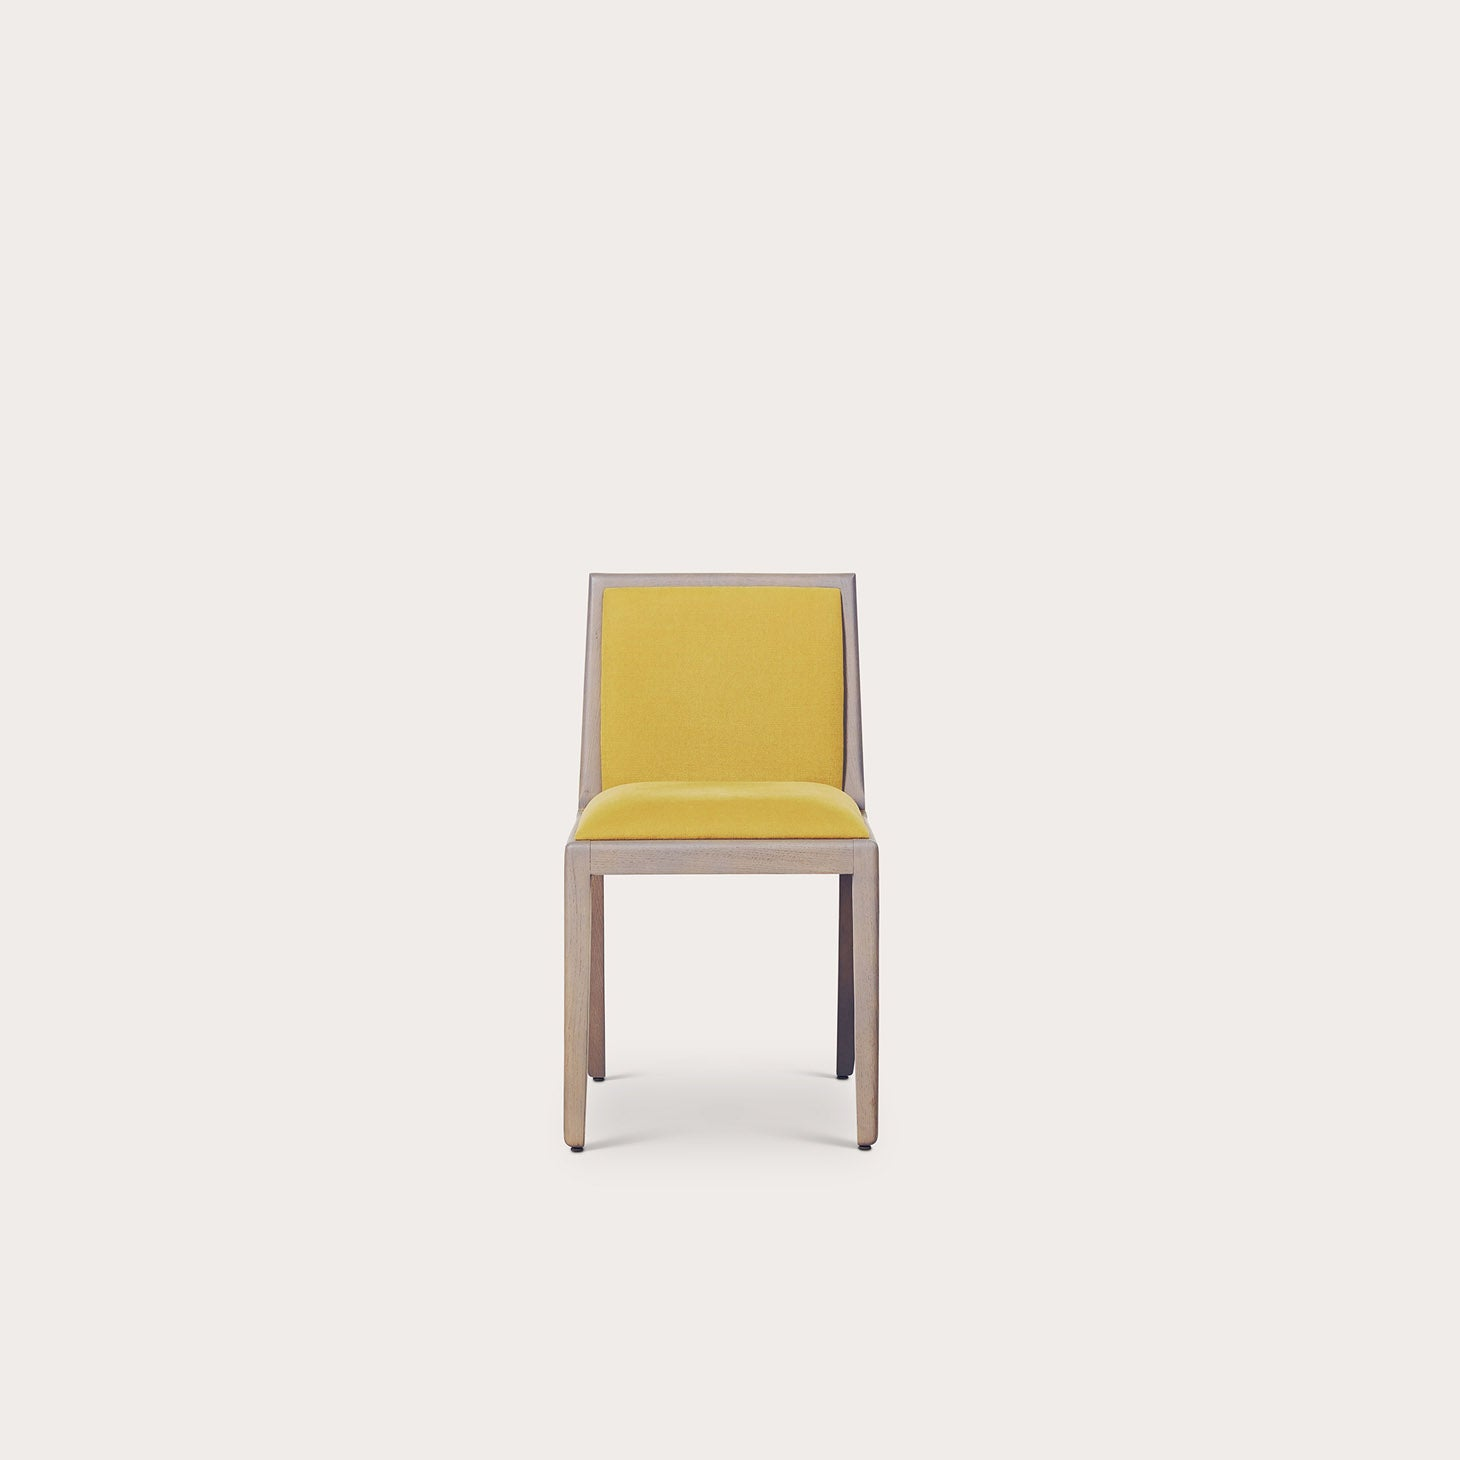 EOL Seating Christophe Delcourt Designer Furniture Sku: 008-120-10073